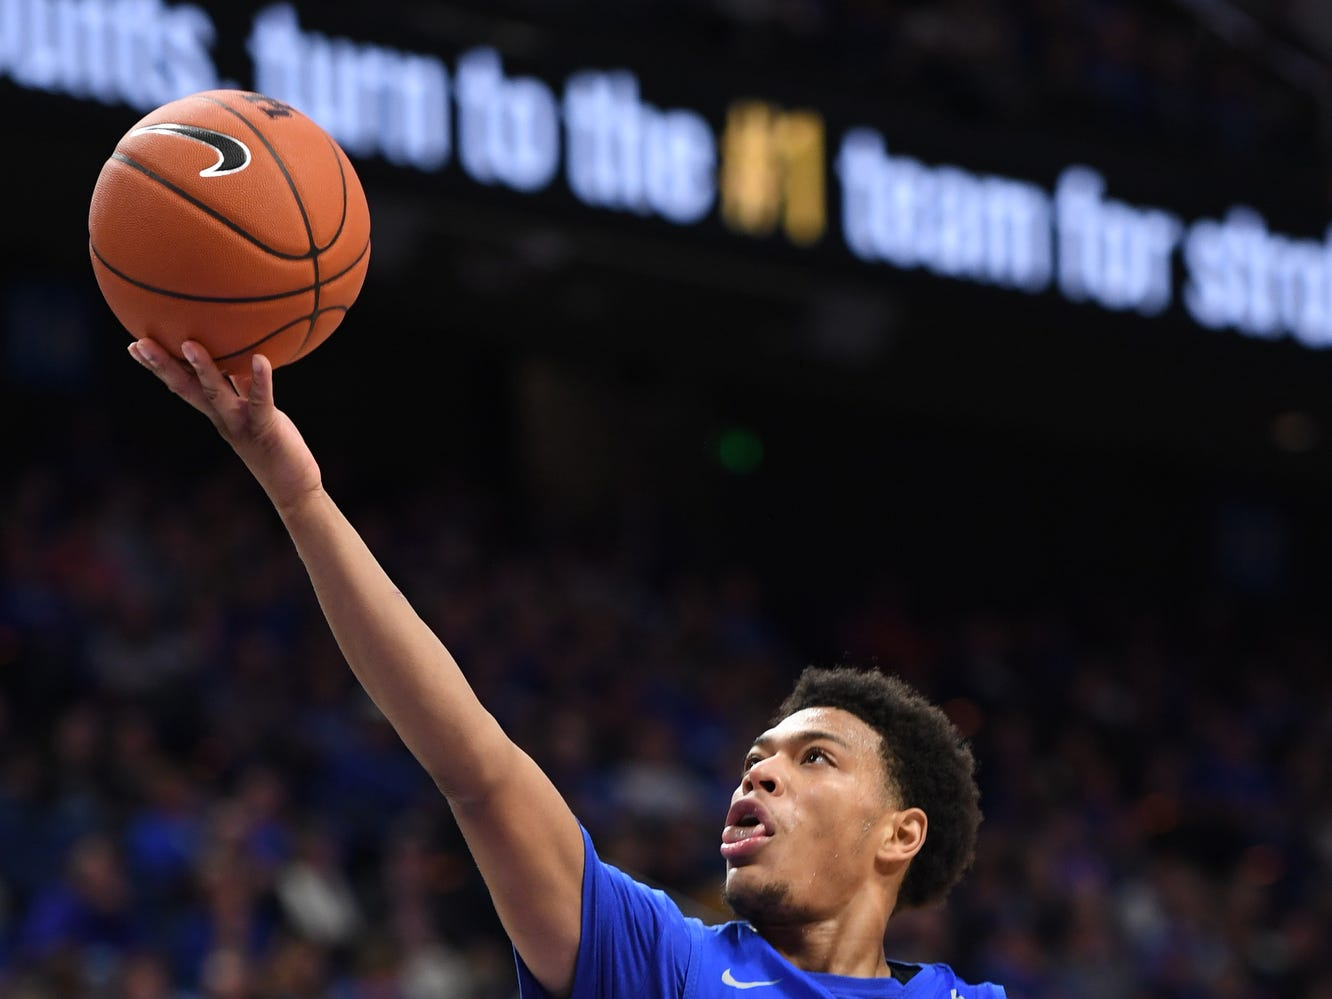 UK G Quade Green lays up the ball during the University of Kentucky mens basketball Blue/White game at Rupp Arena in Lexington, Kentucky on Sunday, October 21, 2018.